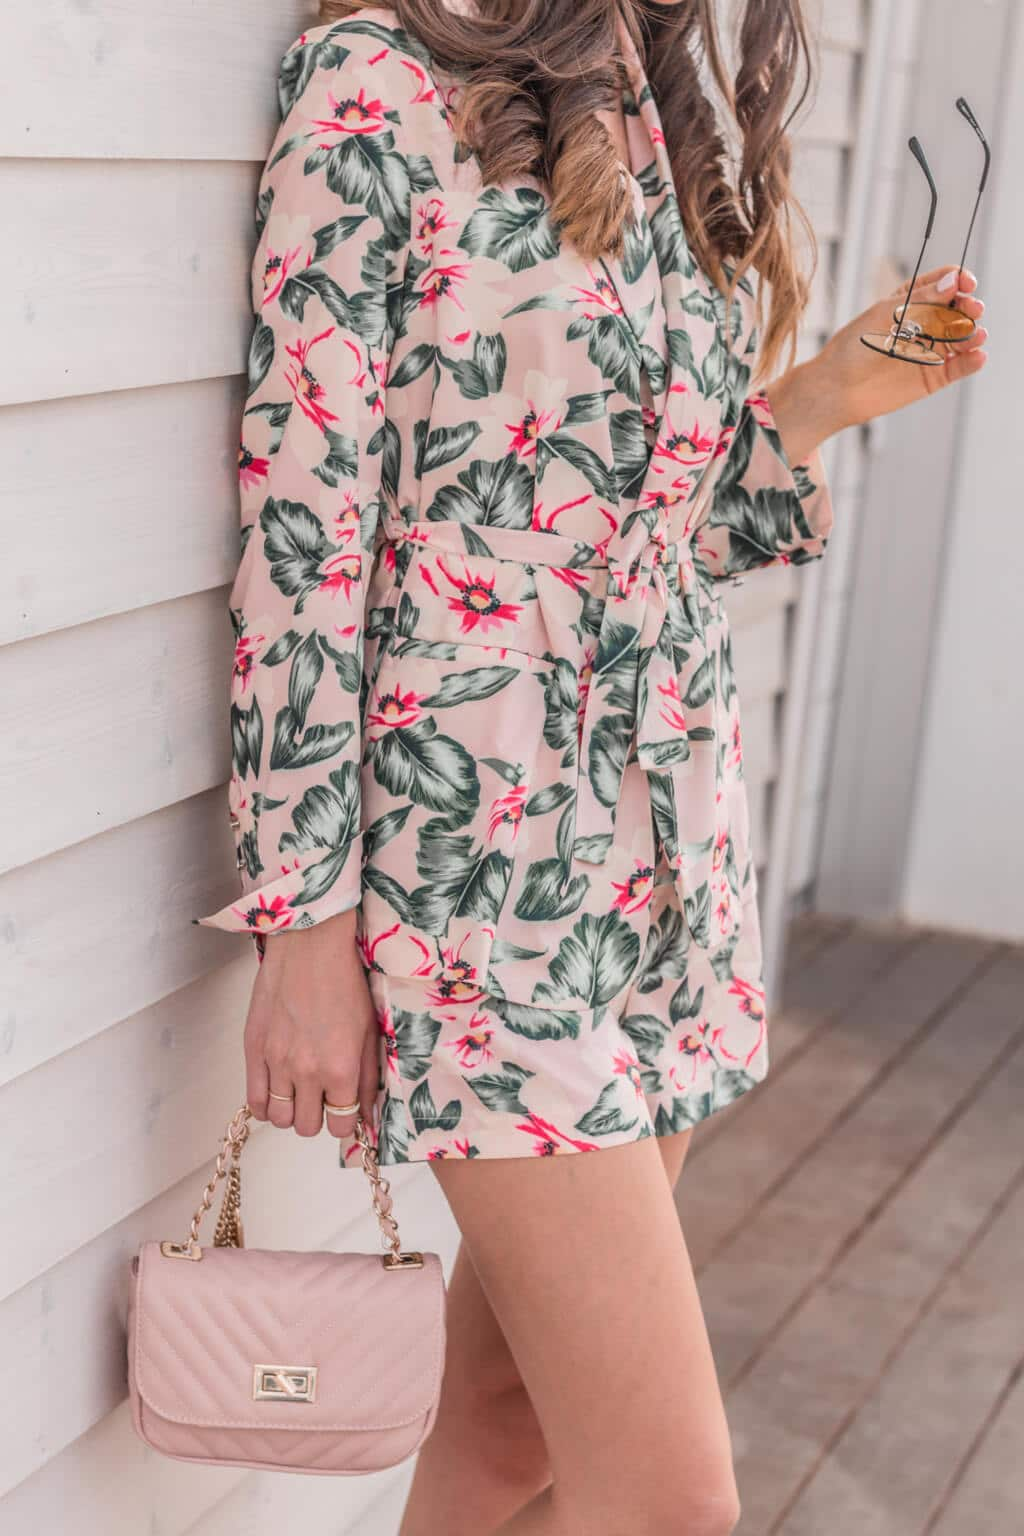 Spring is in the Air : 3 Outfits for the Most Amazing Season of the Year